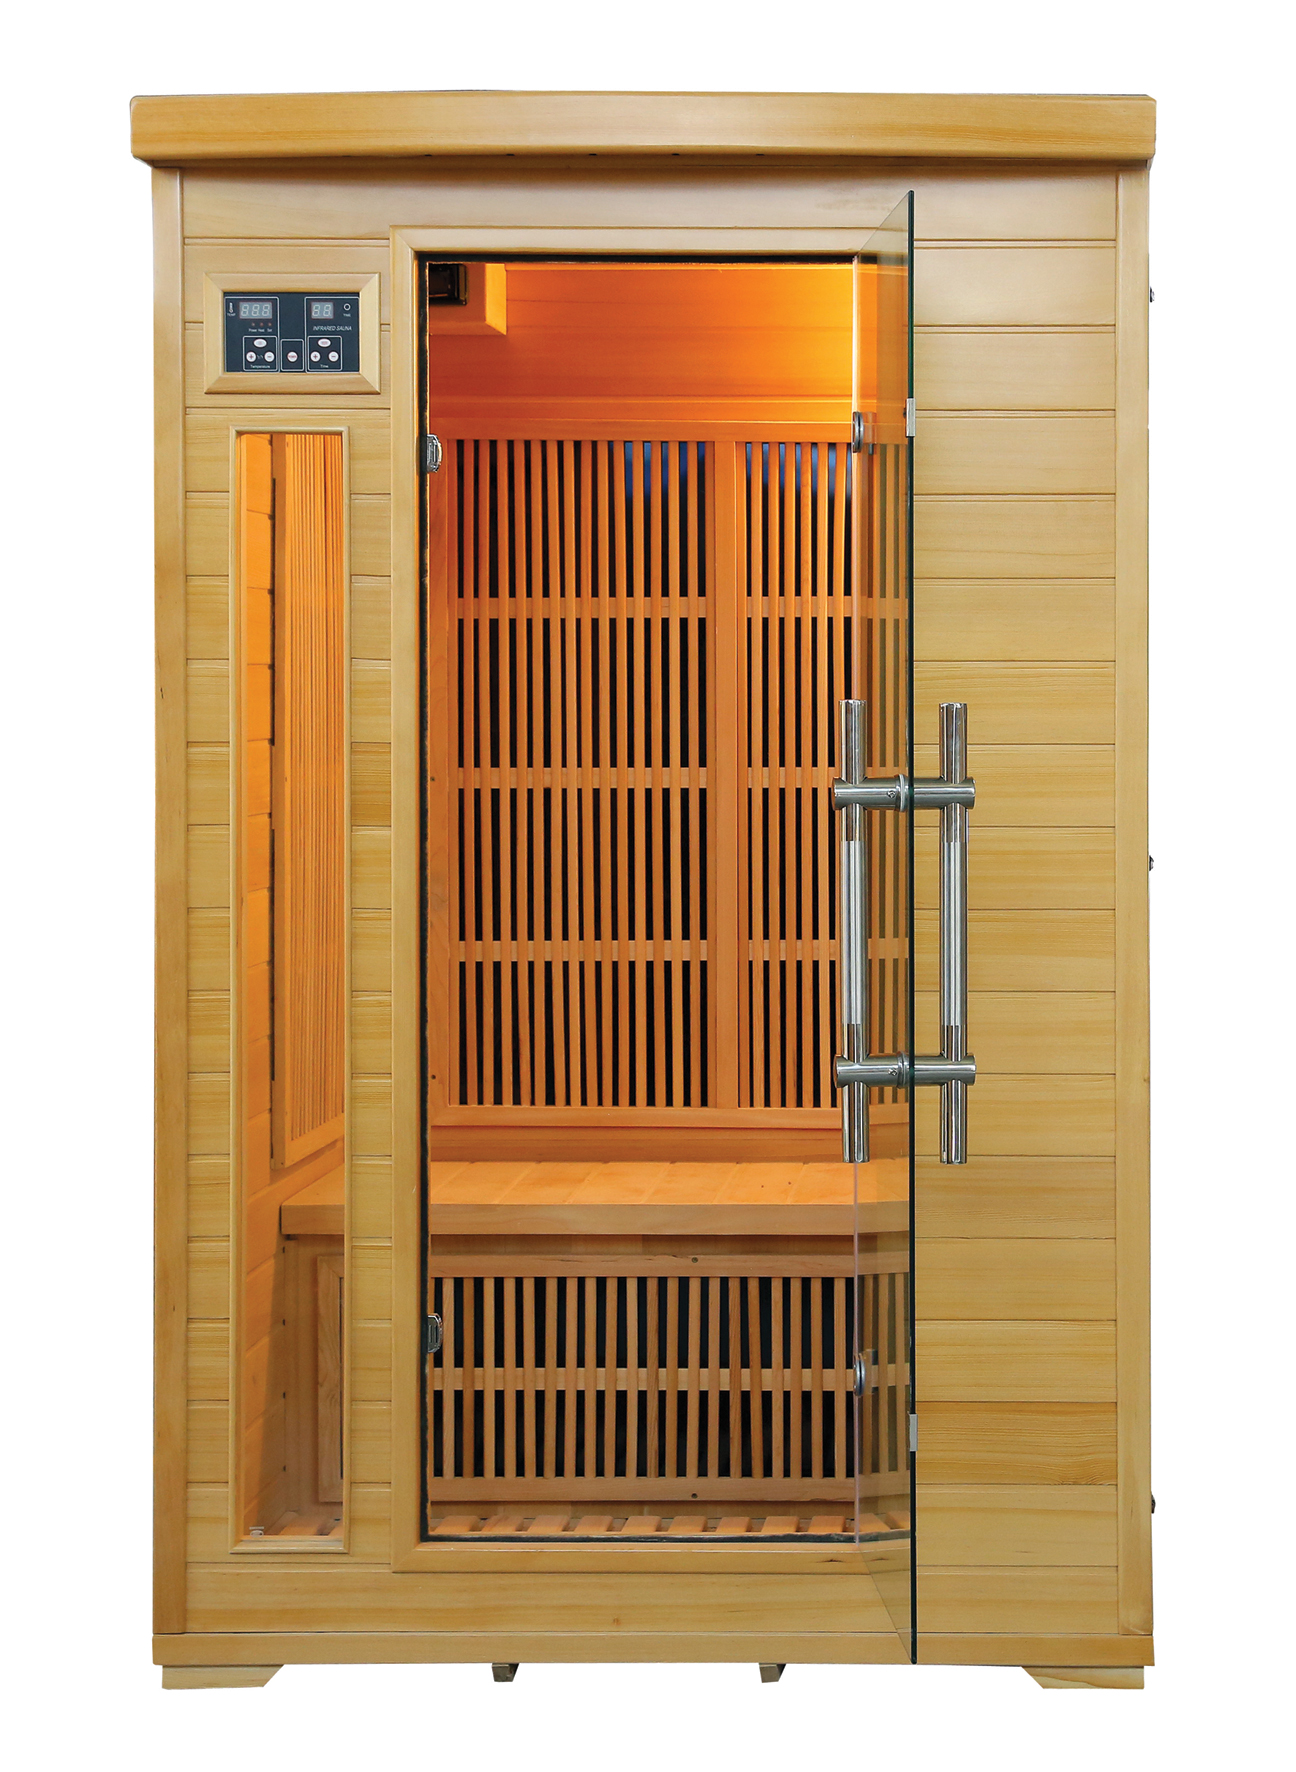 SAUNA Model: LM-F02 Size:1200*1200*1900(mm)Wood: Canadian Hemlock. Heater: 7 Carbon Heater. Power: 1760 W Capacity: 2 Persons. INFRARROJOS